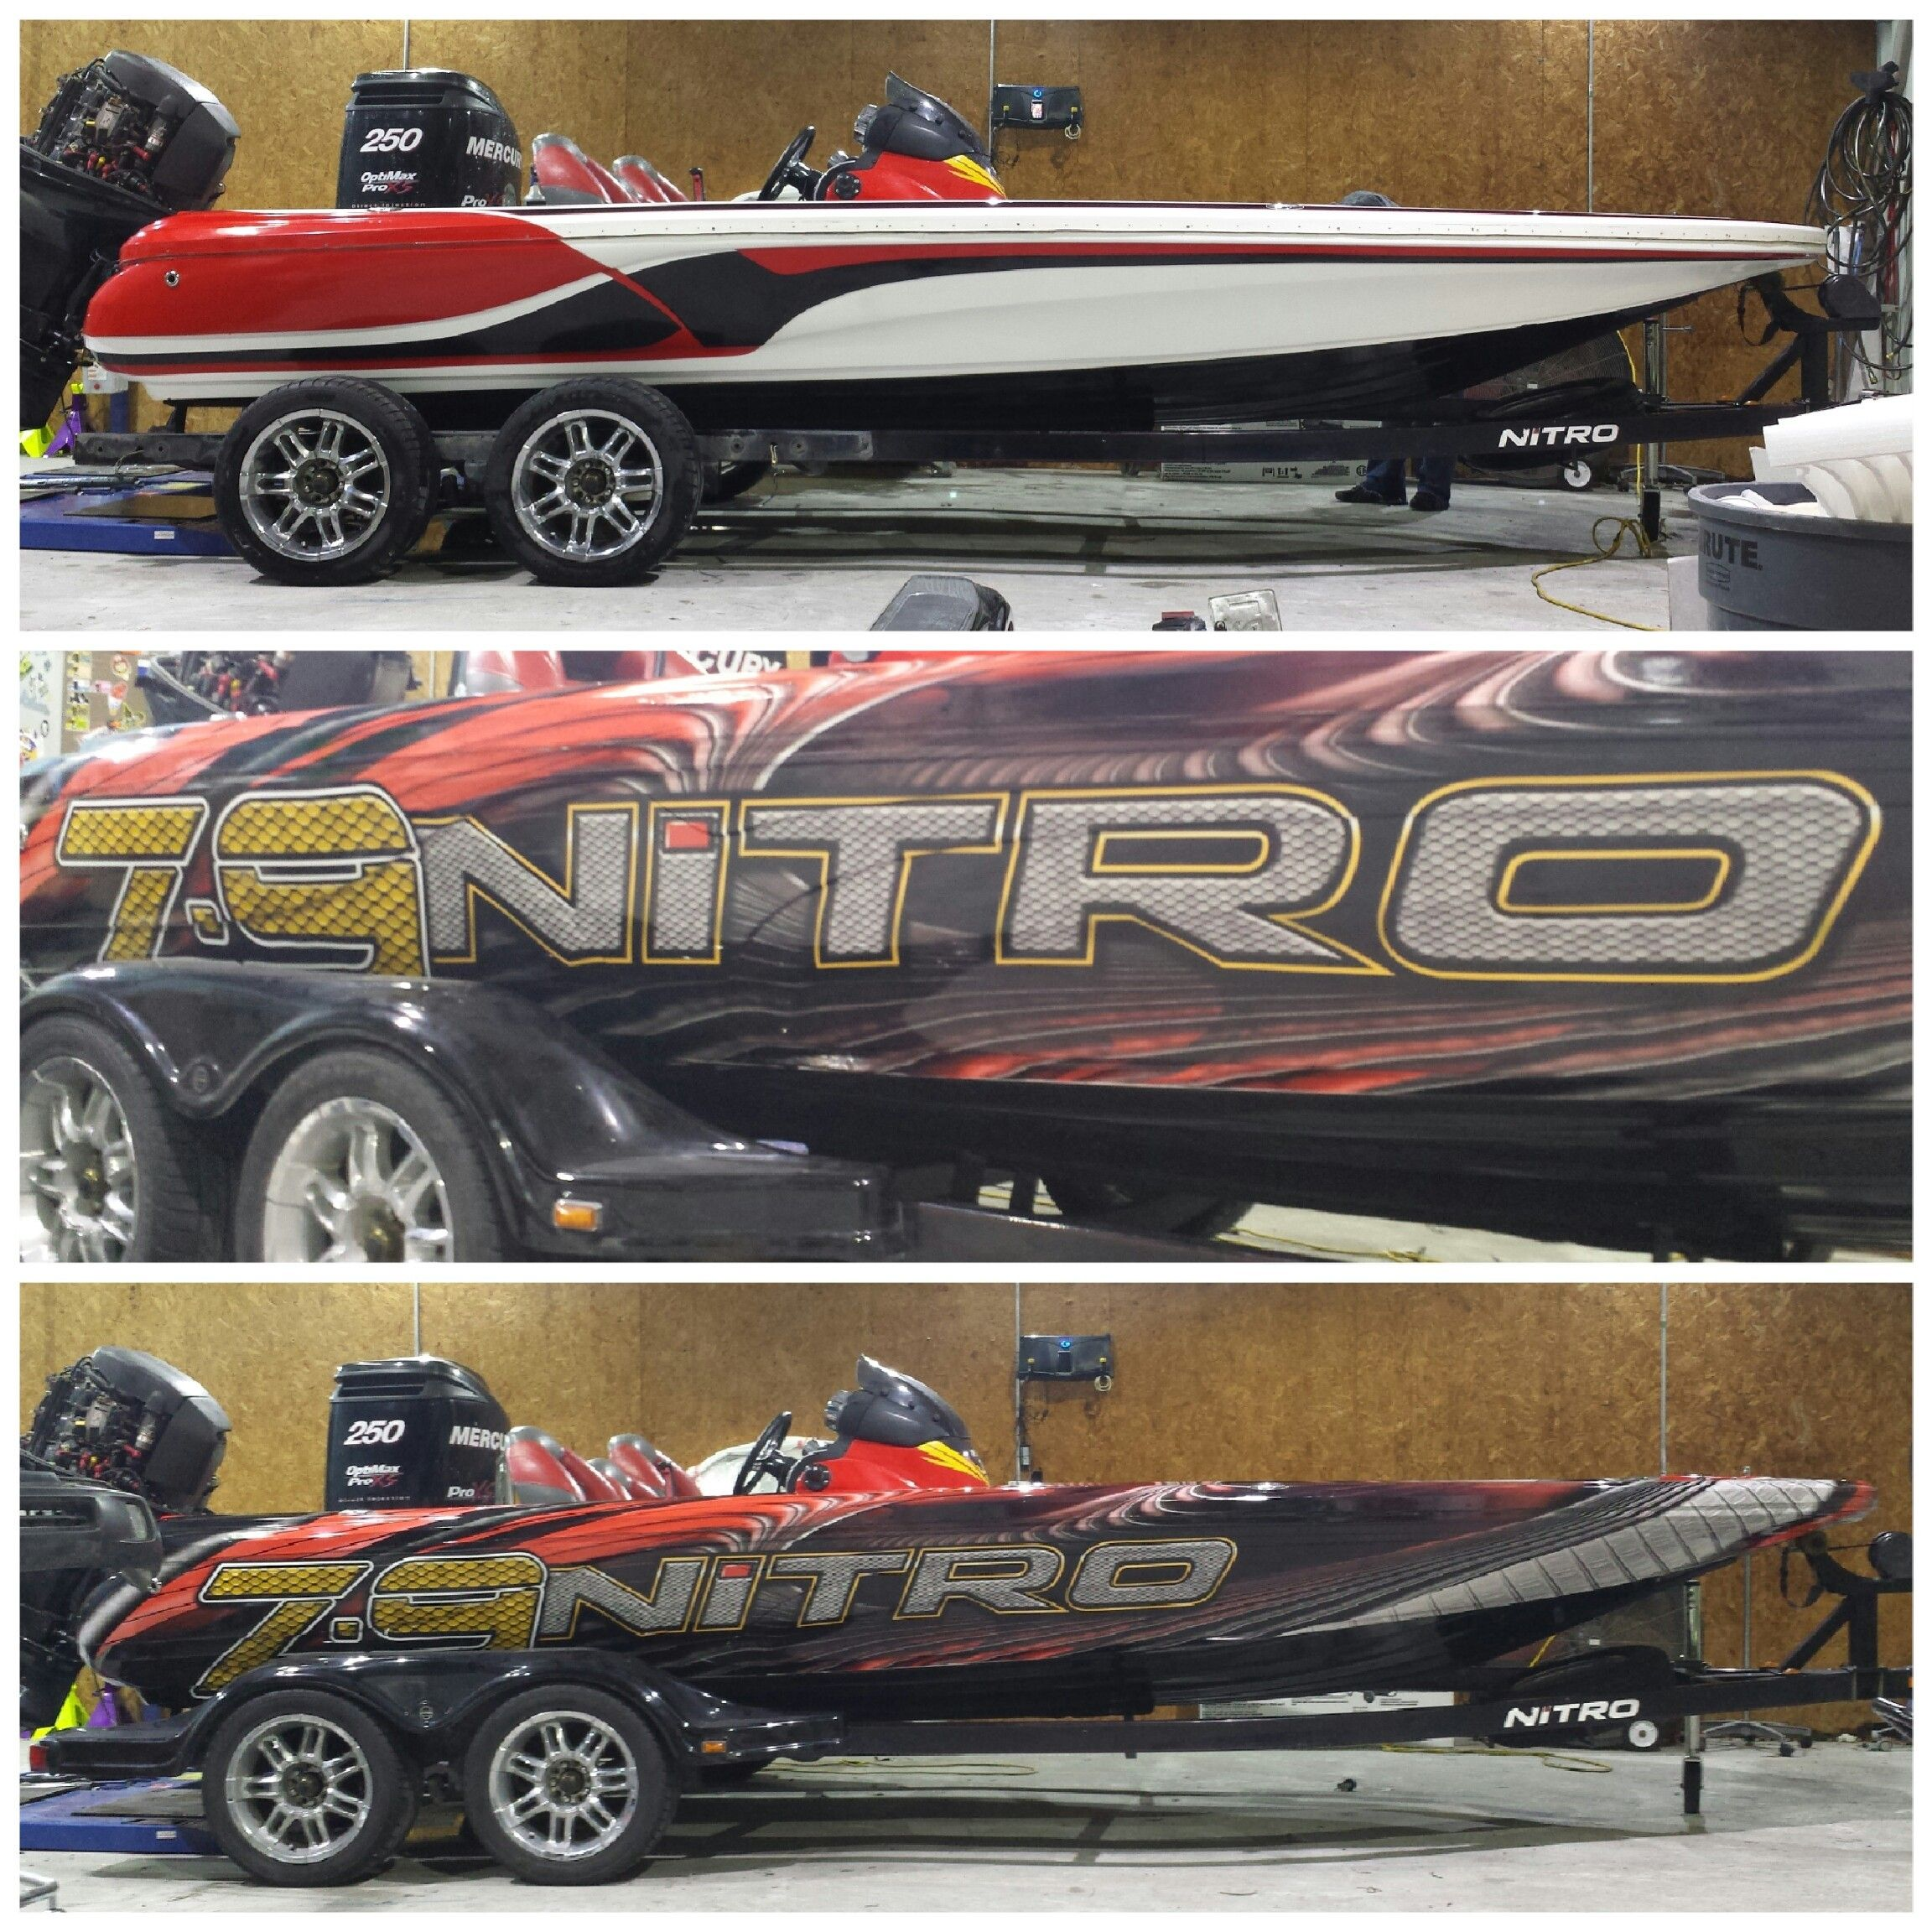 NITRO Z9 bass boat wrapped for another professional